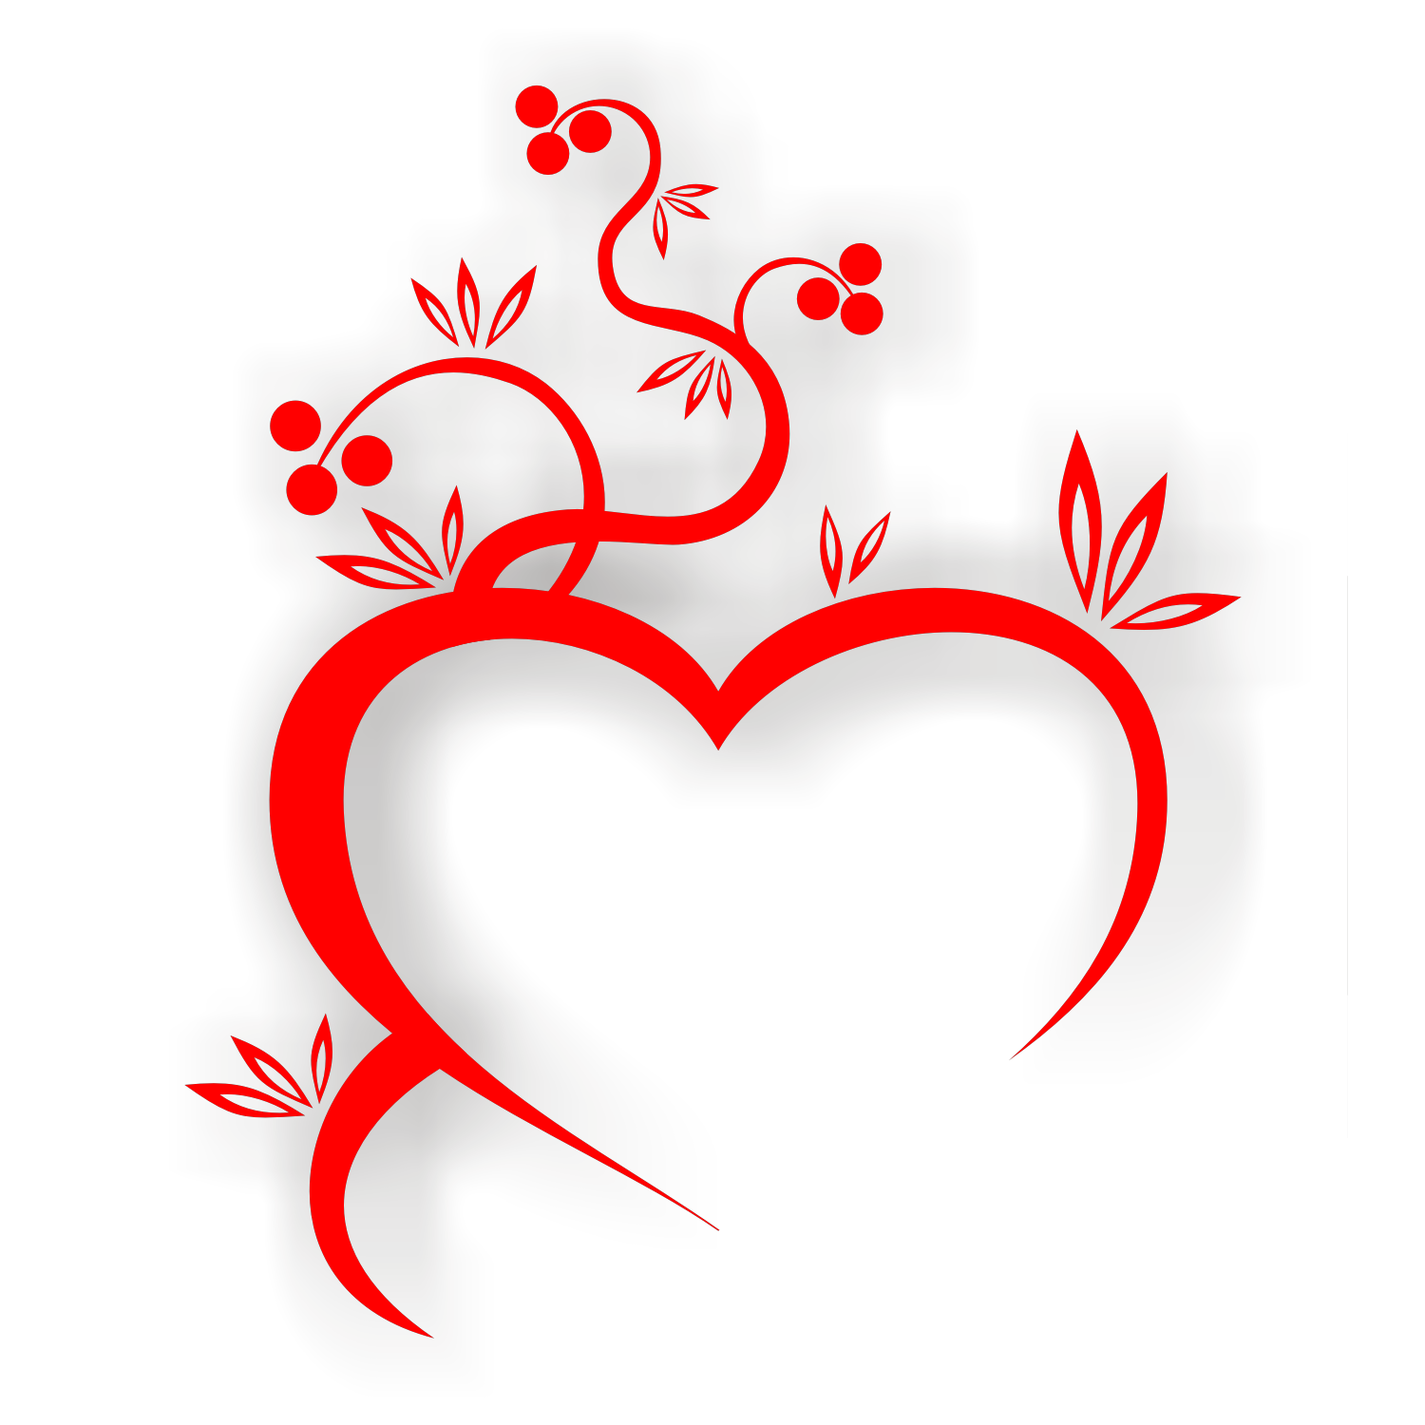 Love Vector Png | Free download best Love Vector Png on